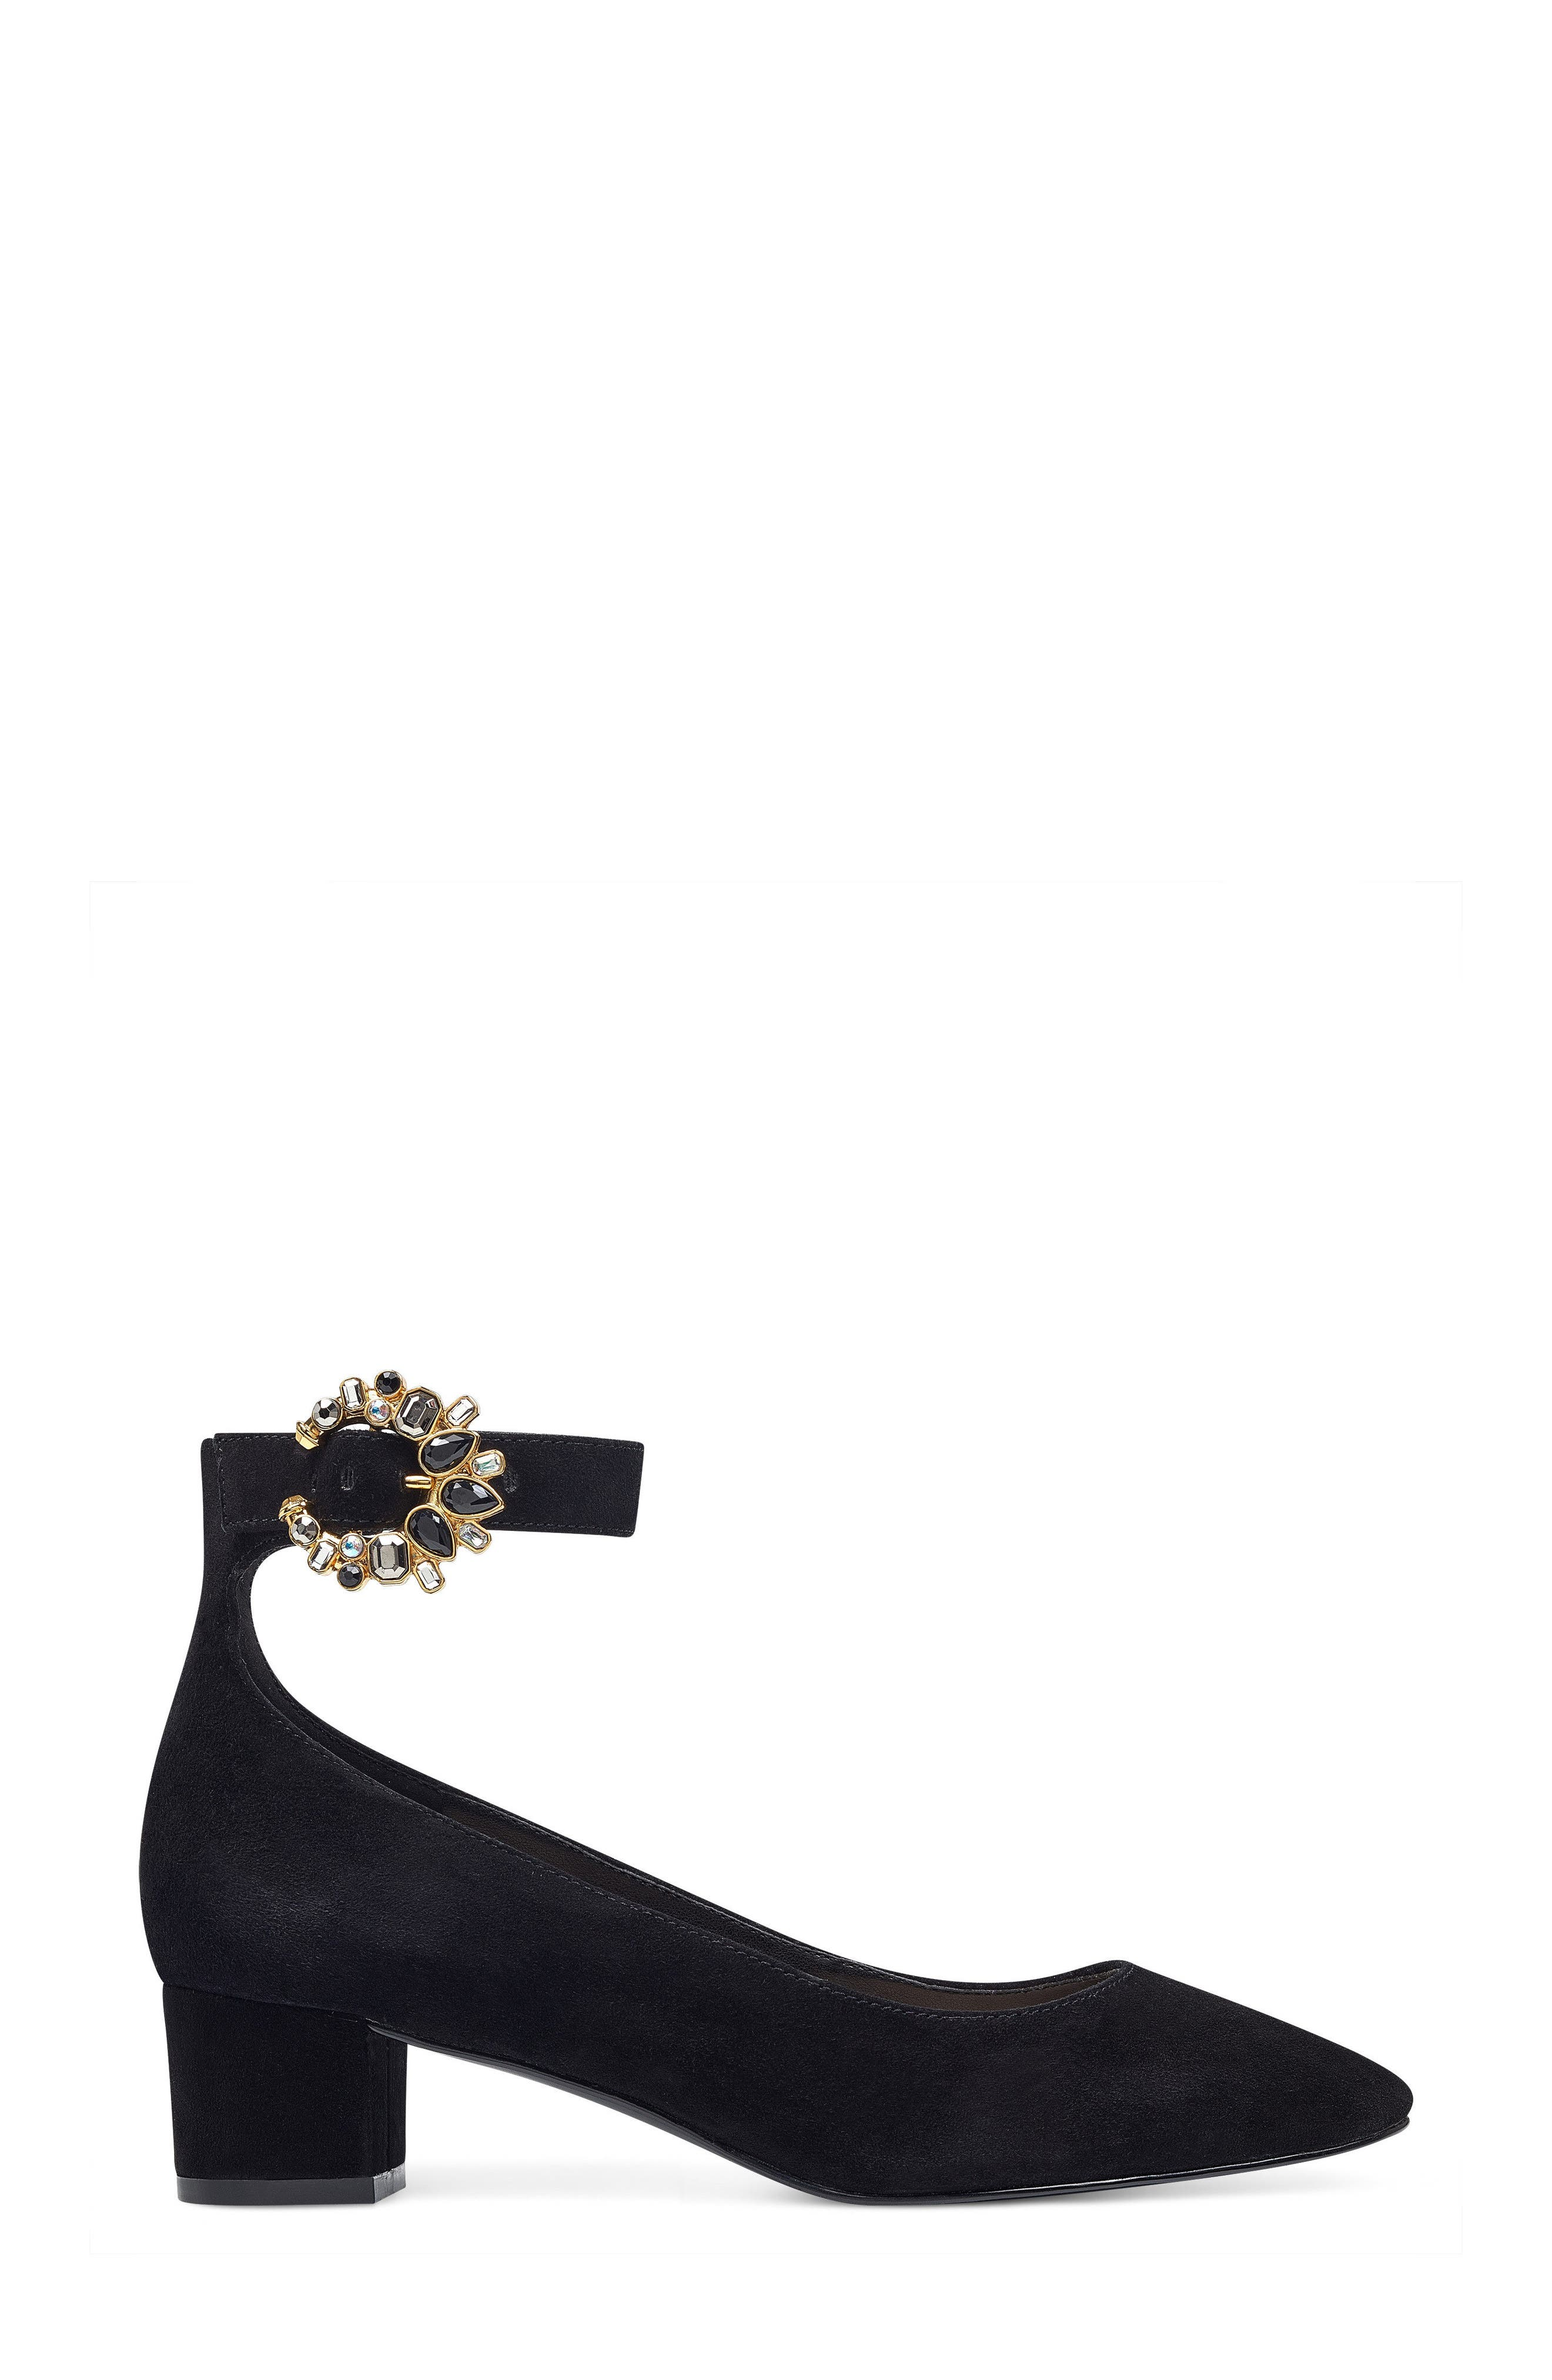 Bartly Ankle Strap Pump,                             Alternate thumbnail 3, color,                             001